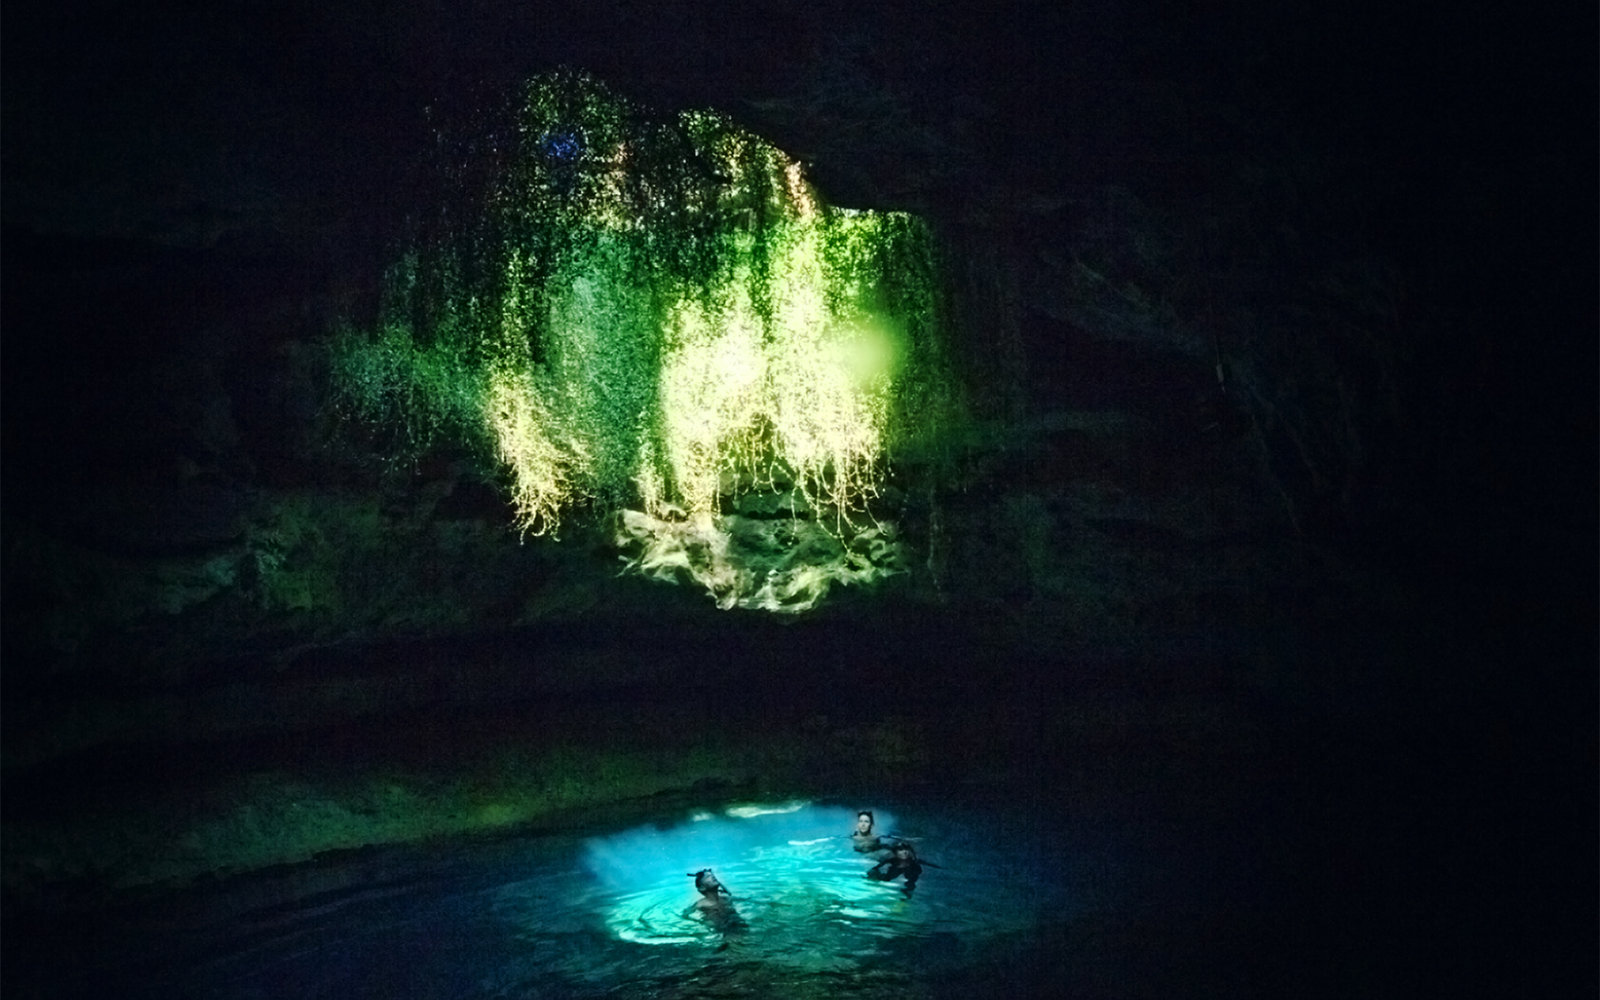 Devil's Den Spring in Williston, Florida